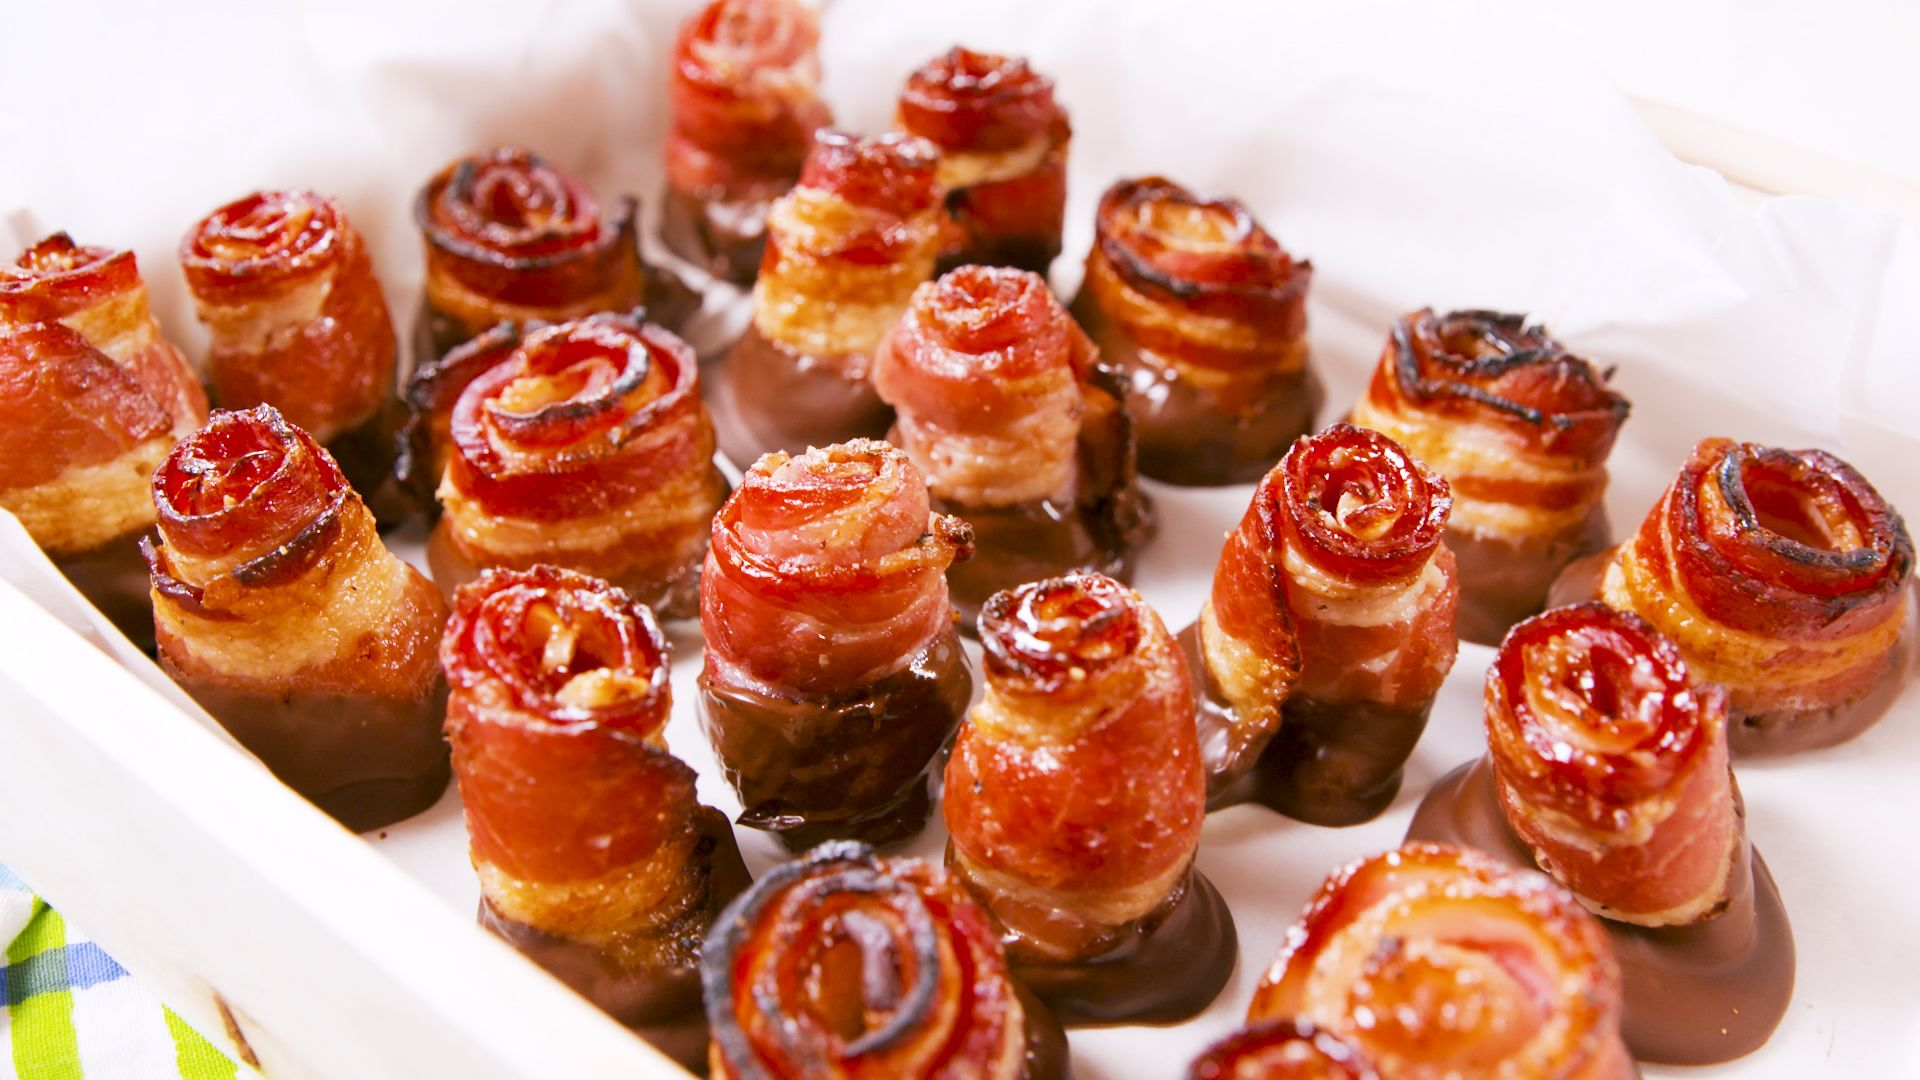 Bacon Chocolate Roses